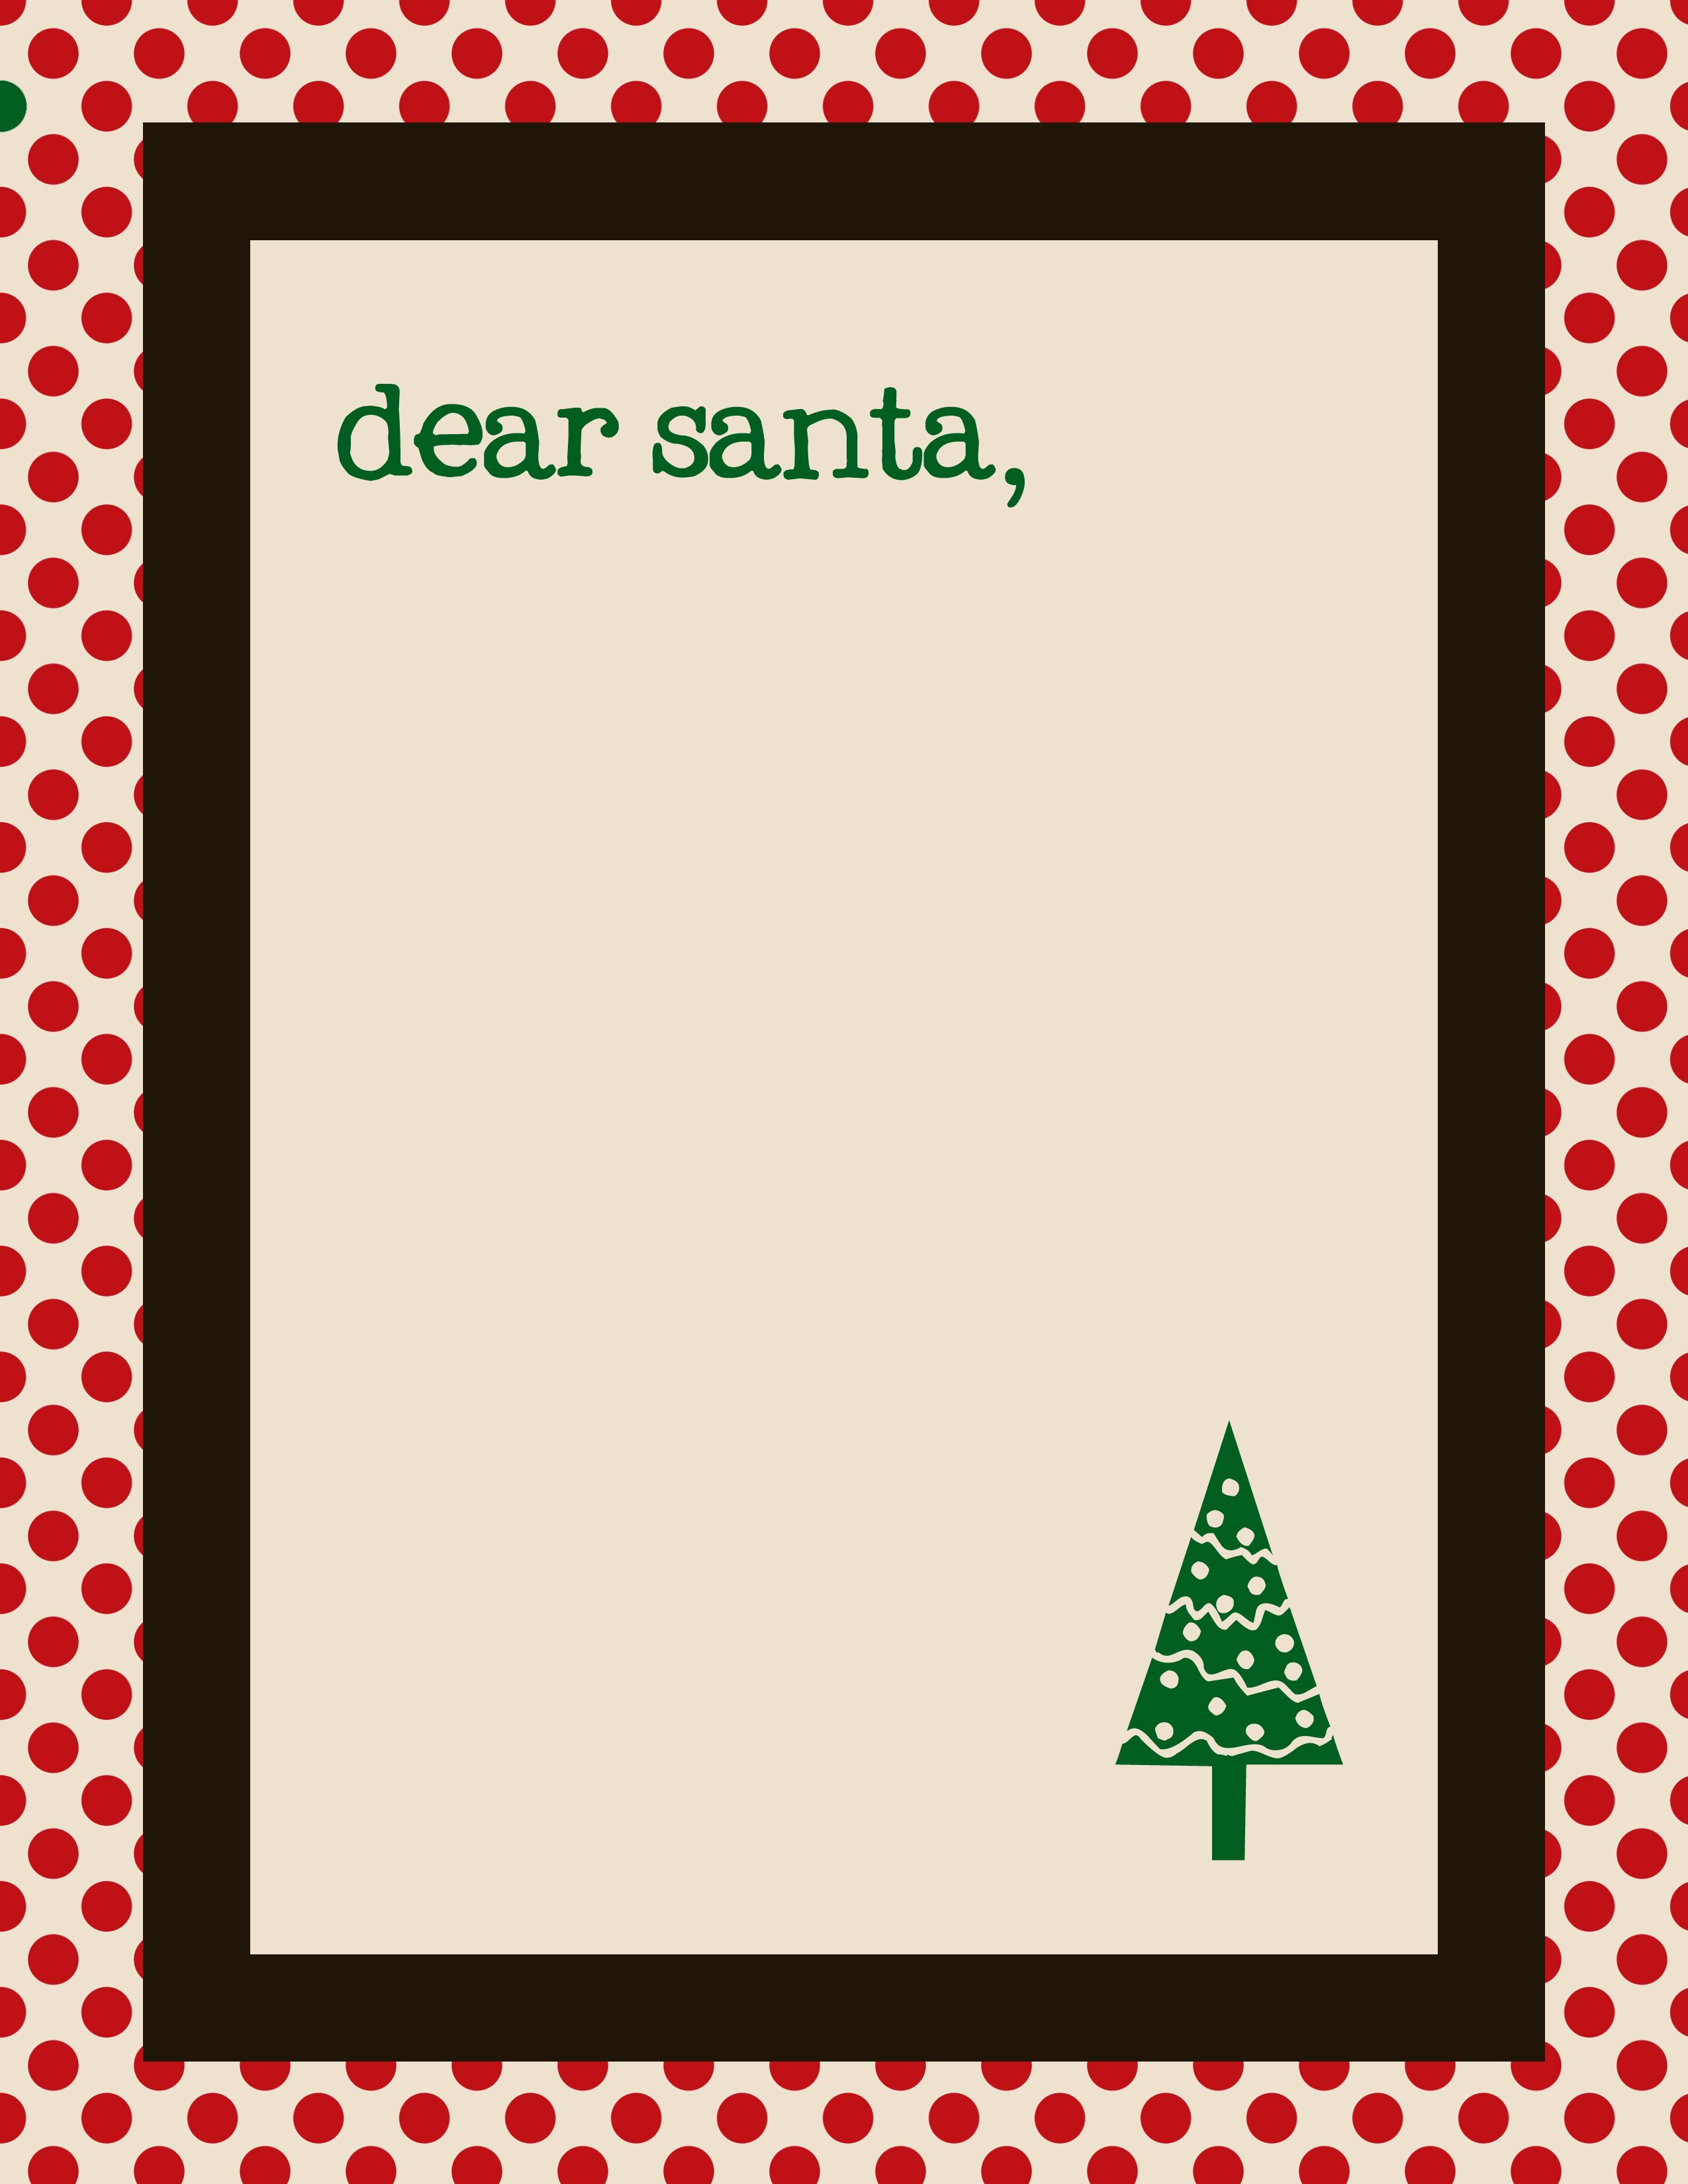 santa letter cream & red with green copy